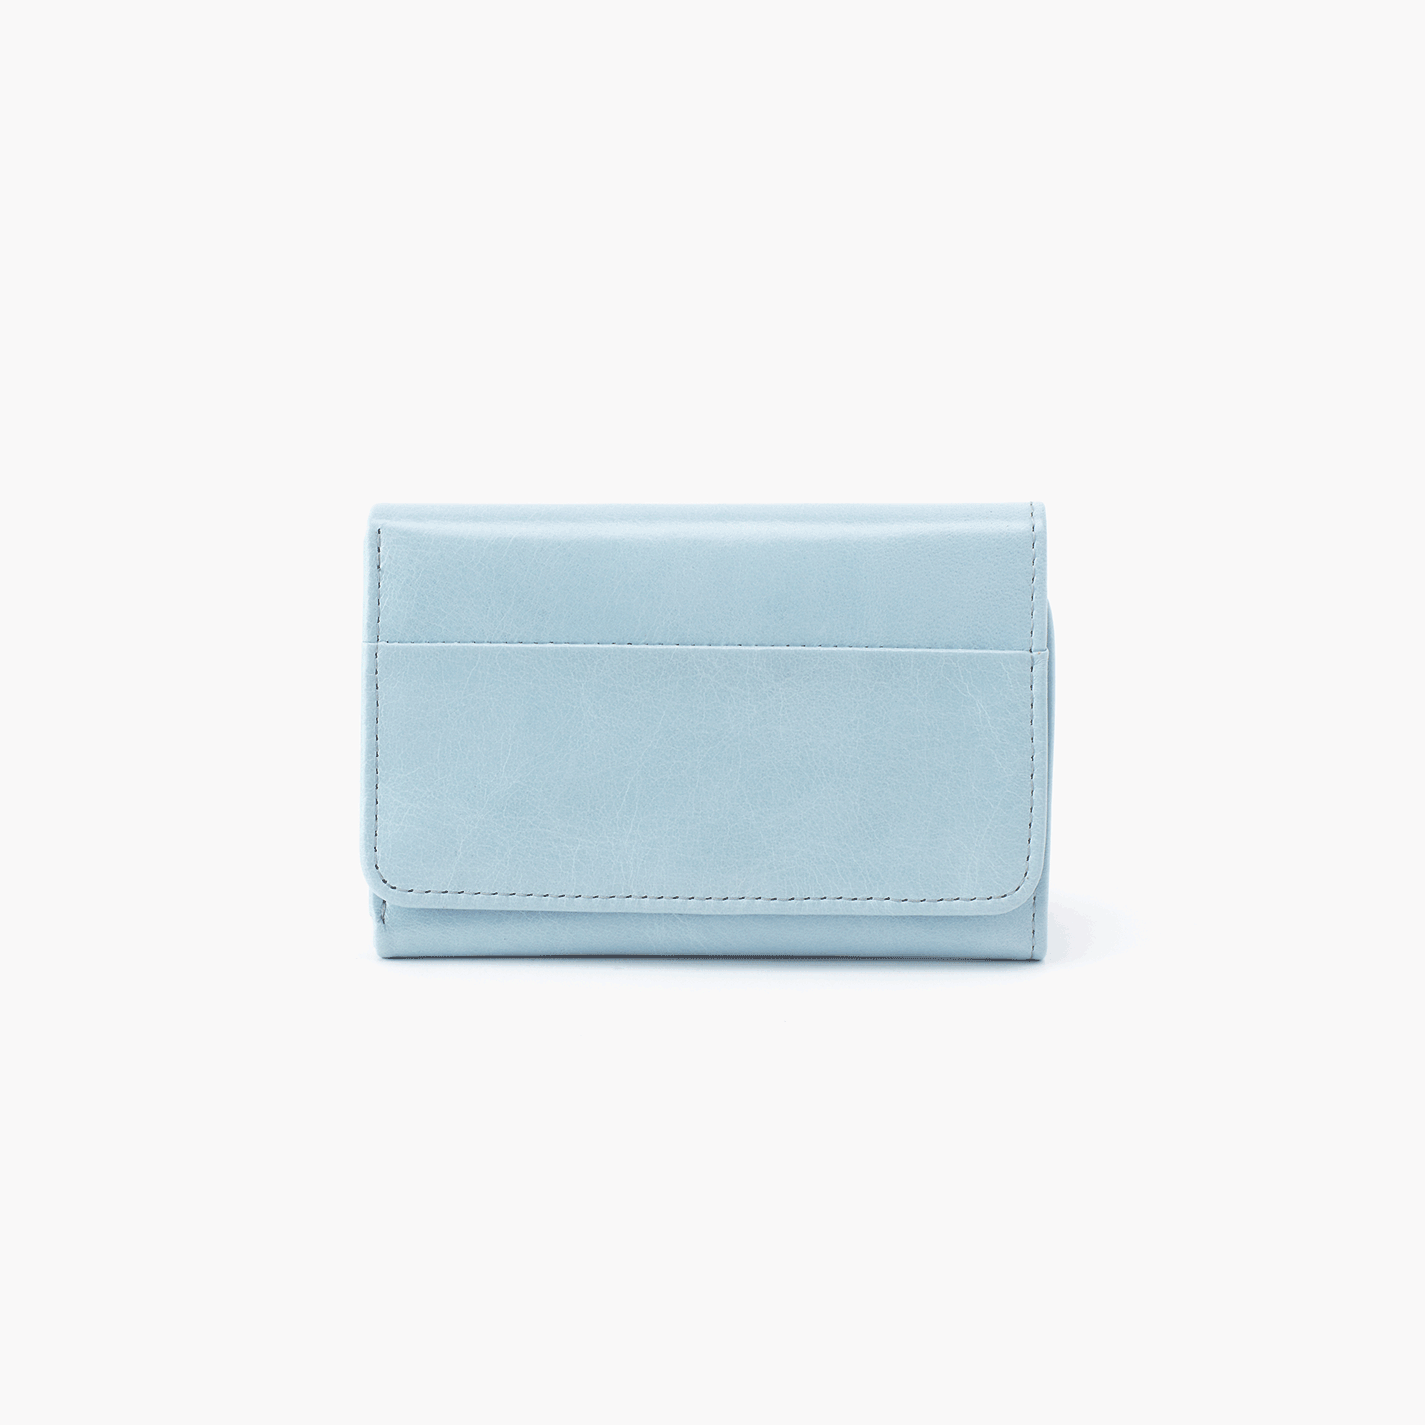 Hobo Jill Wallet (Whisper Blue)